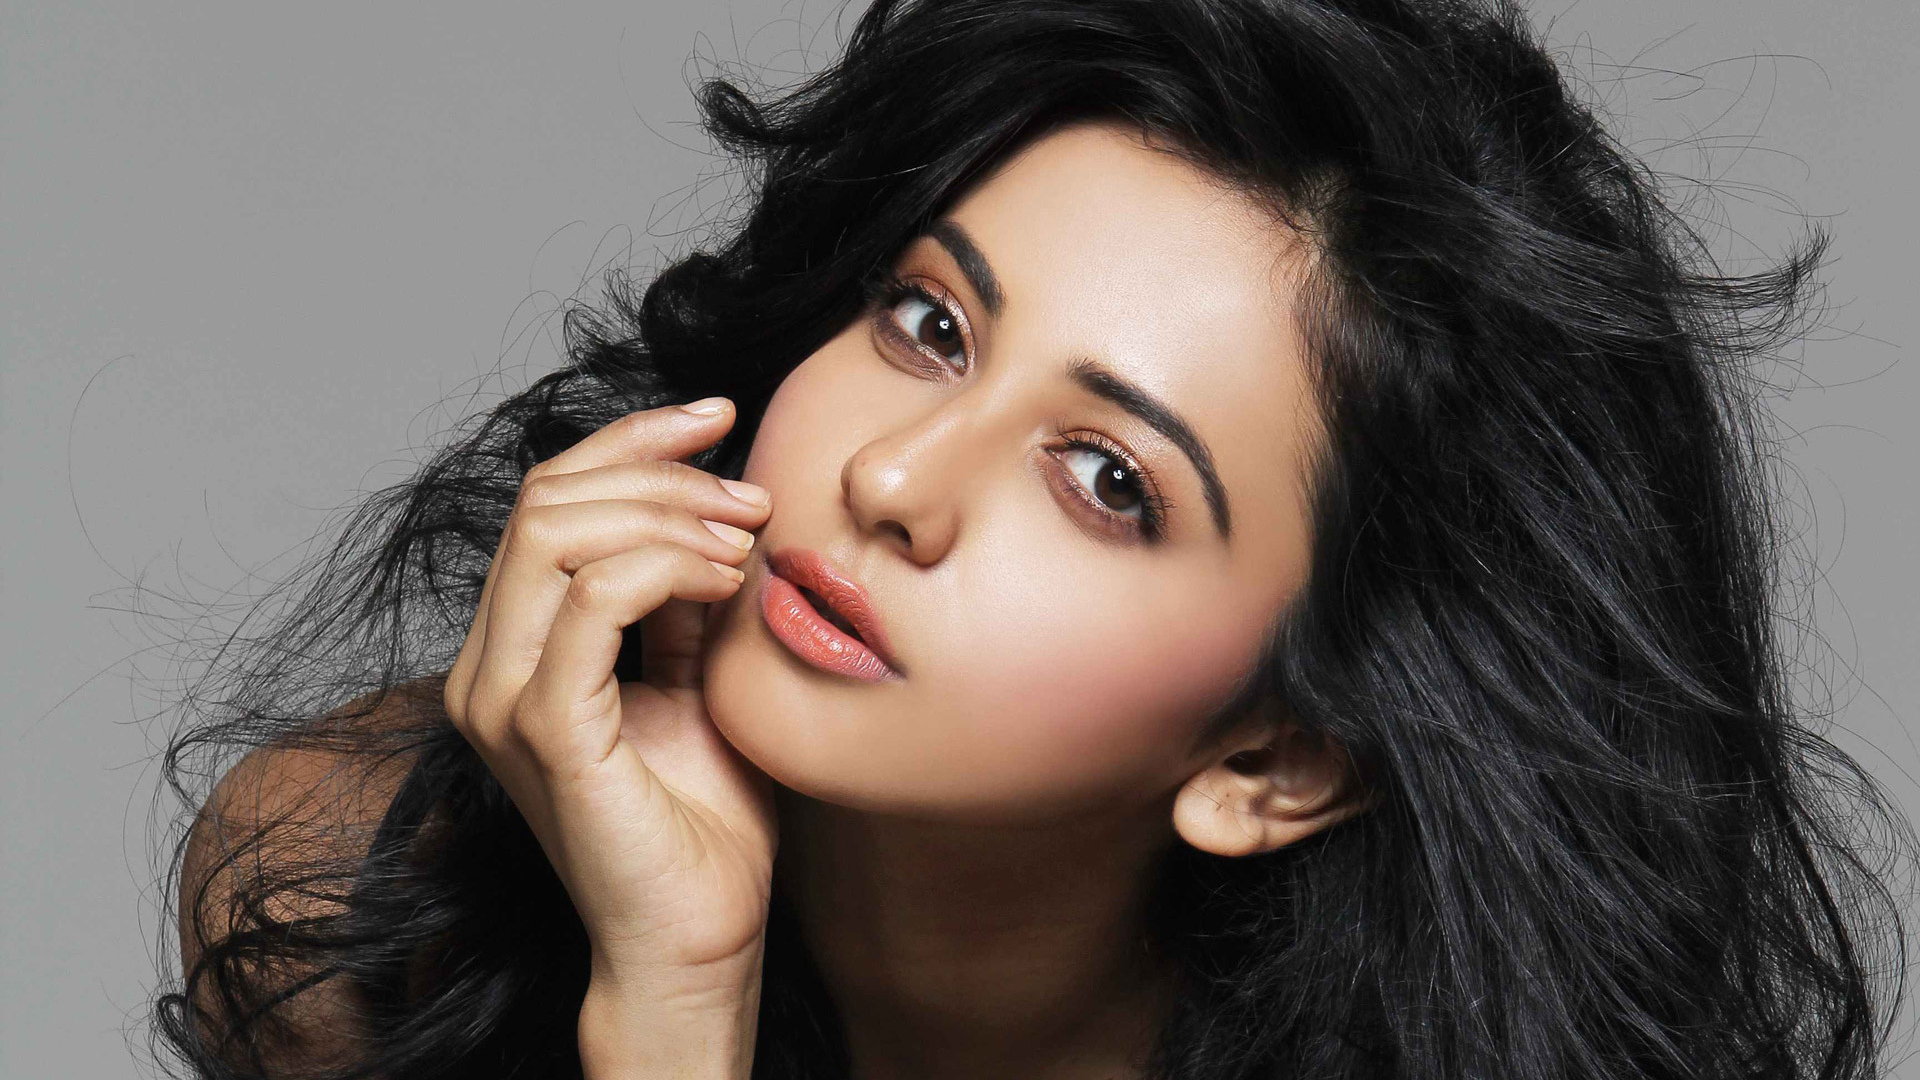 1920x1080 rakul preet singh laptop full hd 1080p hd 4k wallpapers